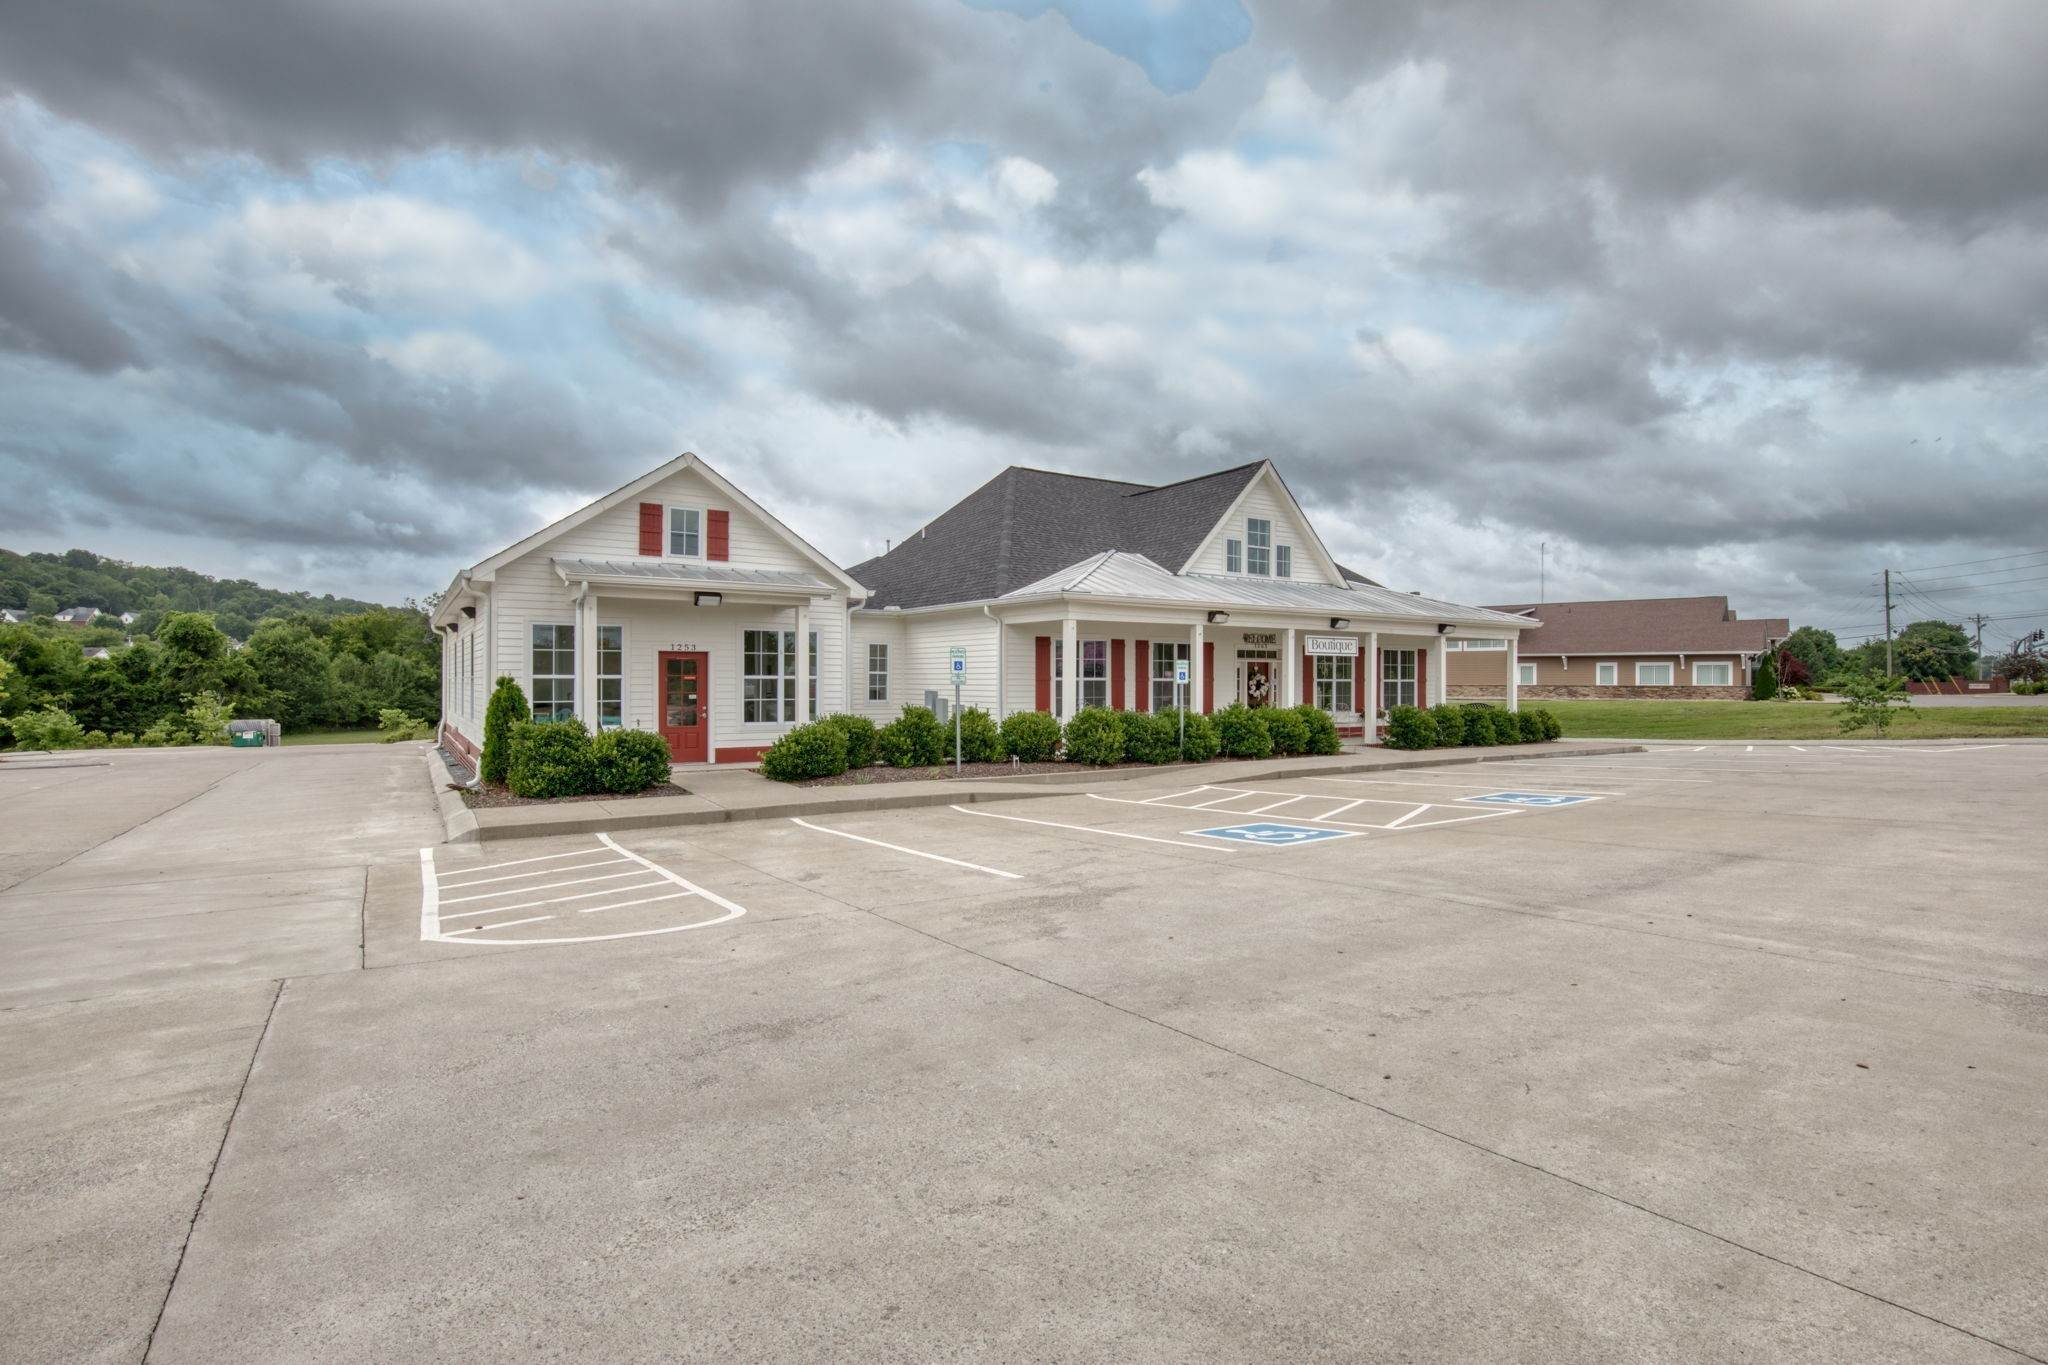 Commercial for Sale at 1281 Rock Springs Road Smyrna, Tennessee 37167 United States